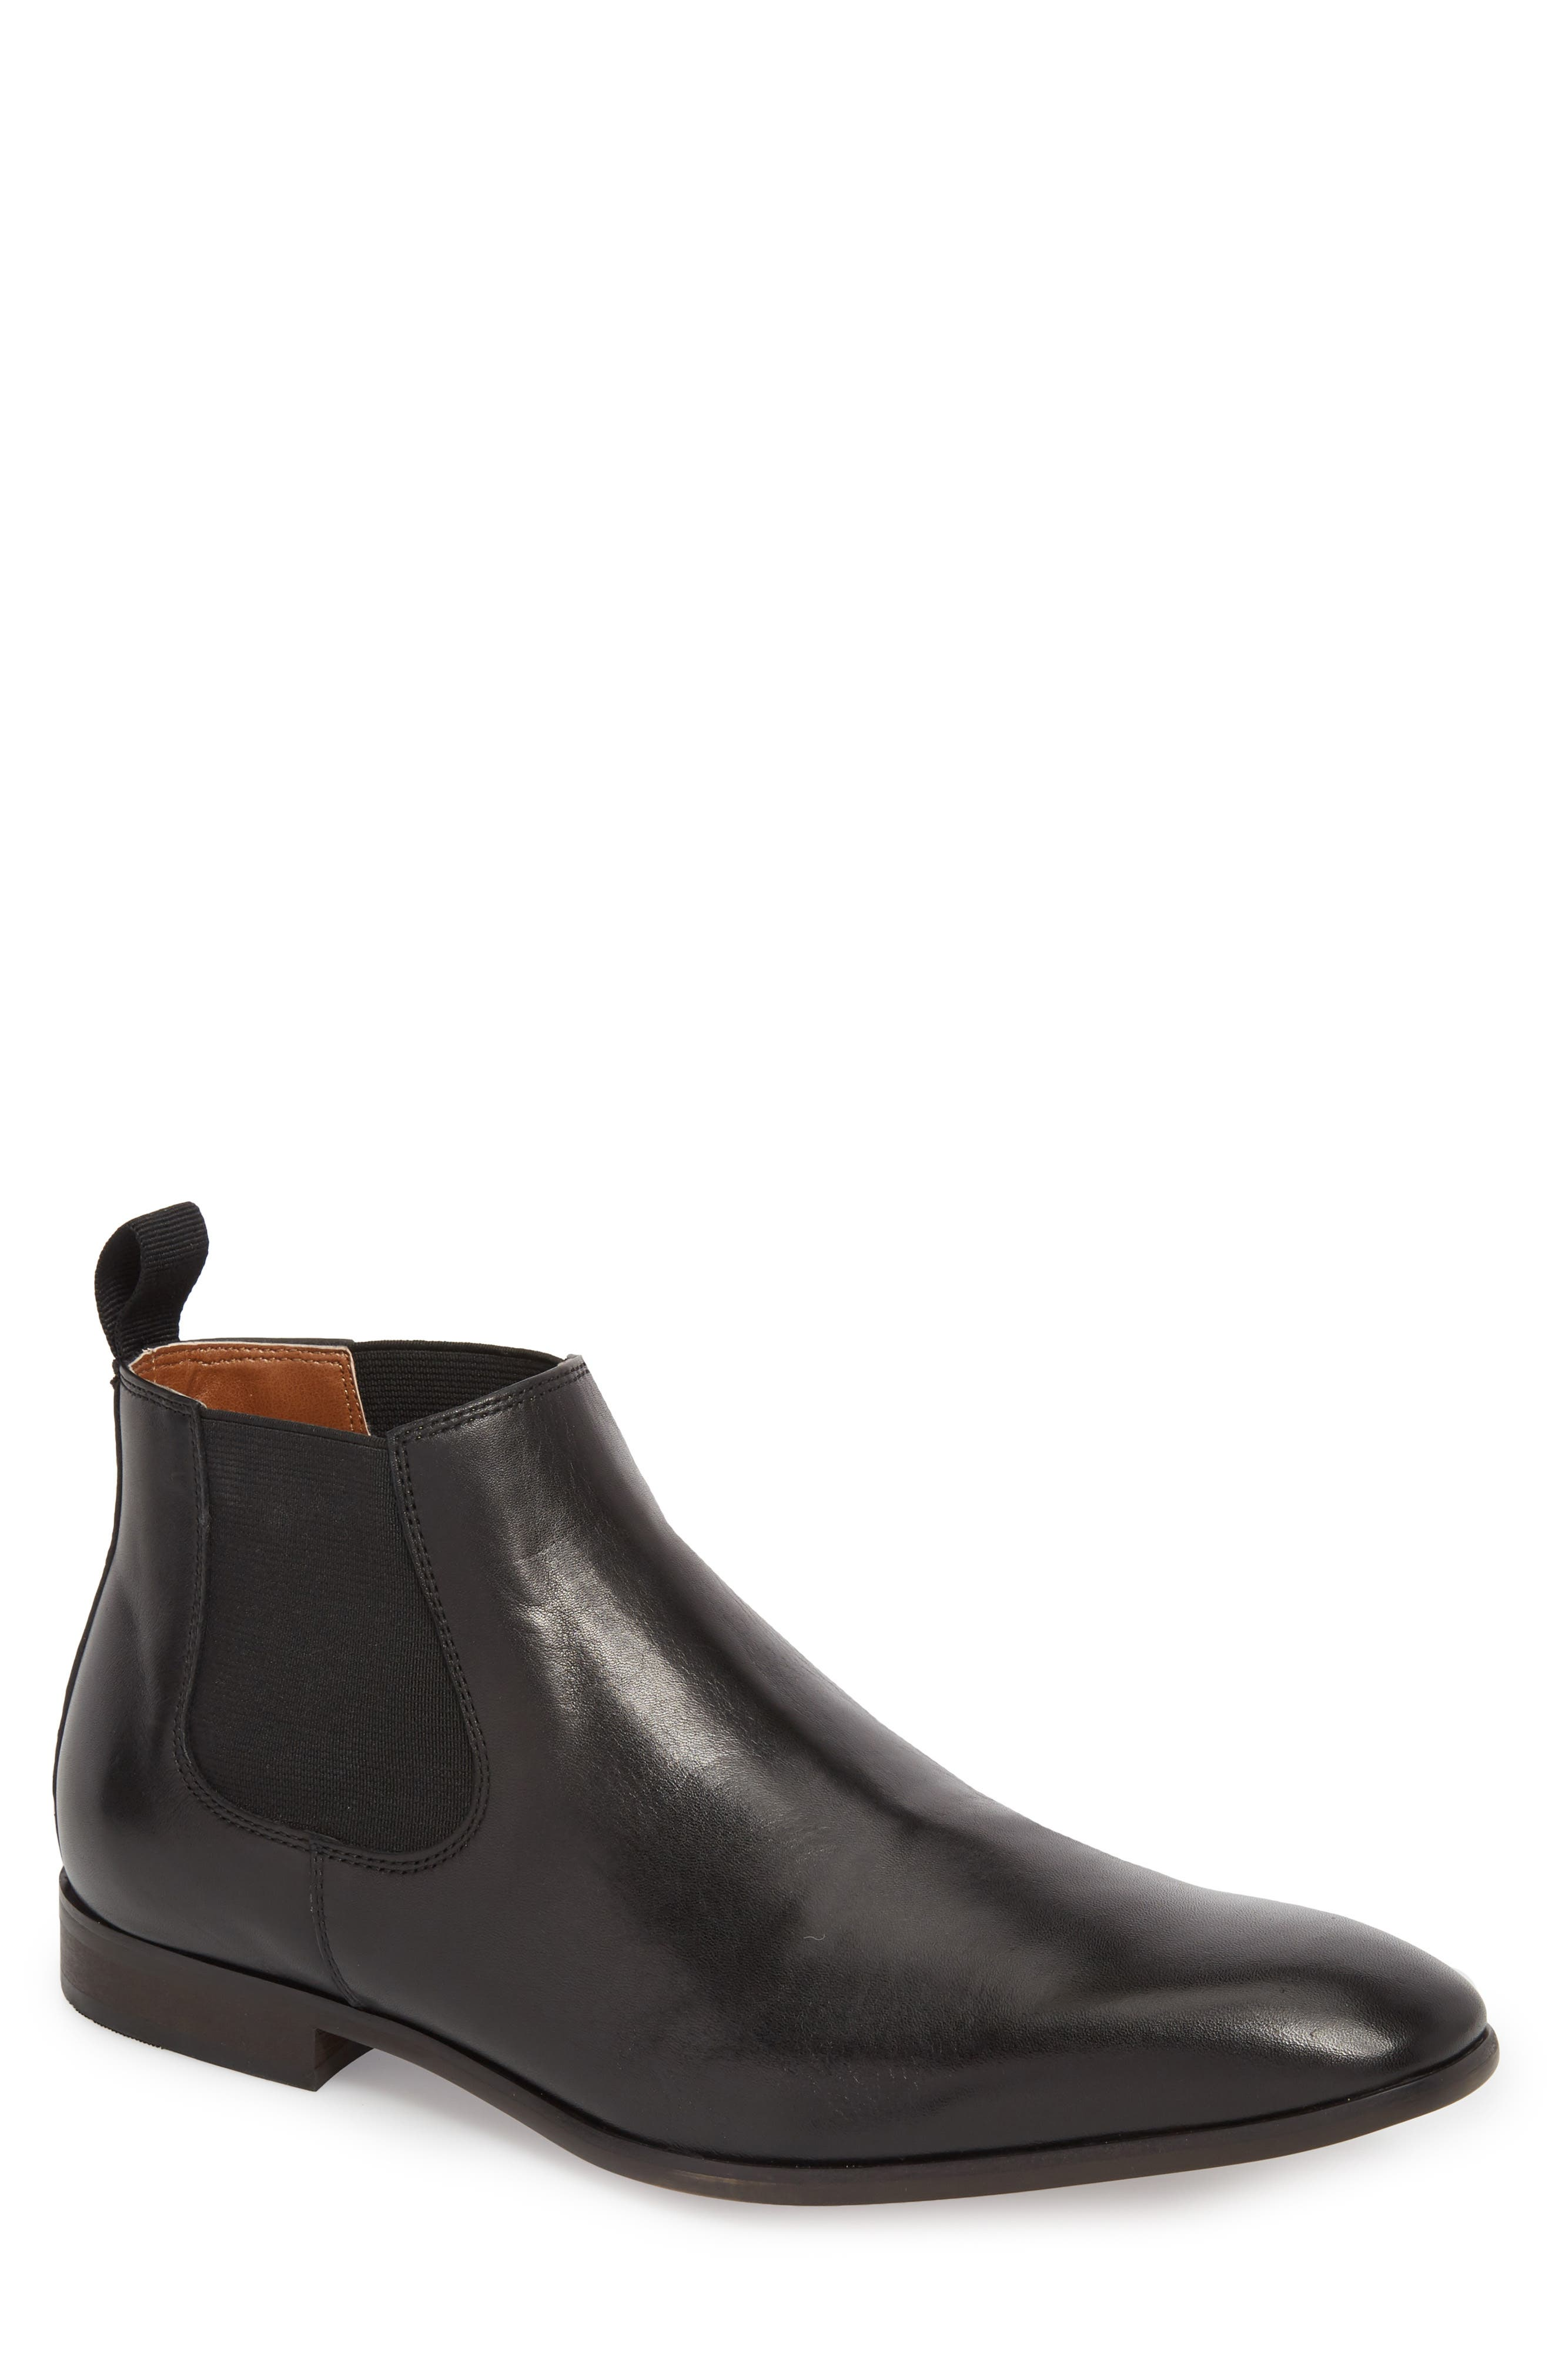 Edward Chelsea Boot,                         Main,                         color, 001